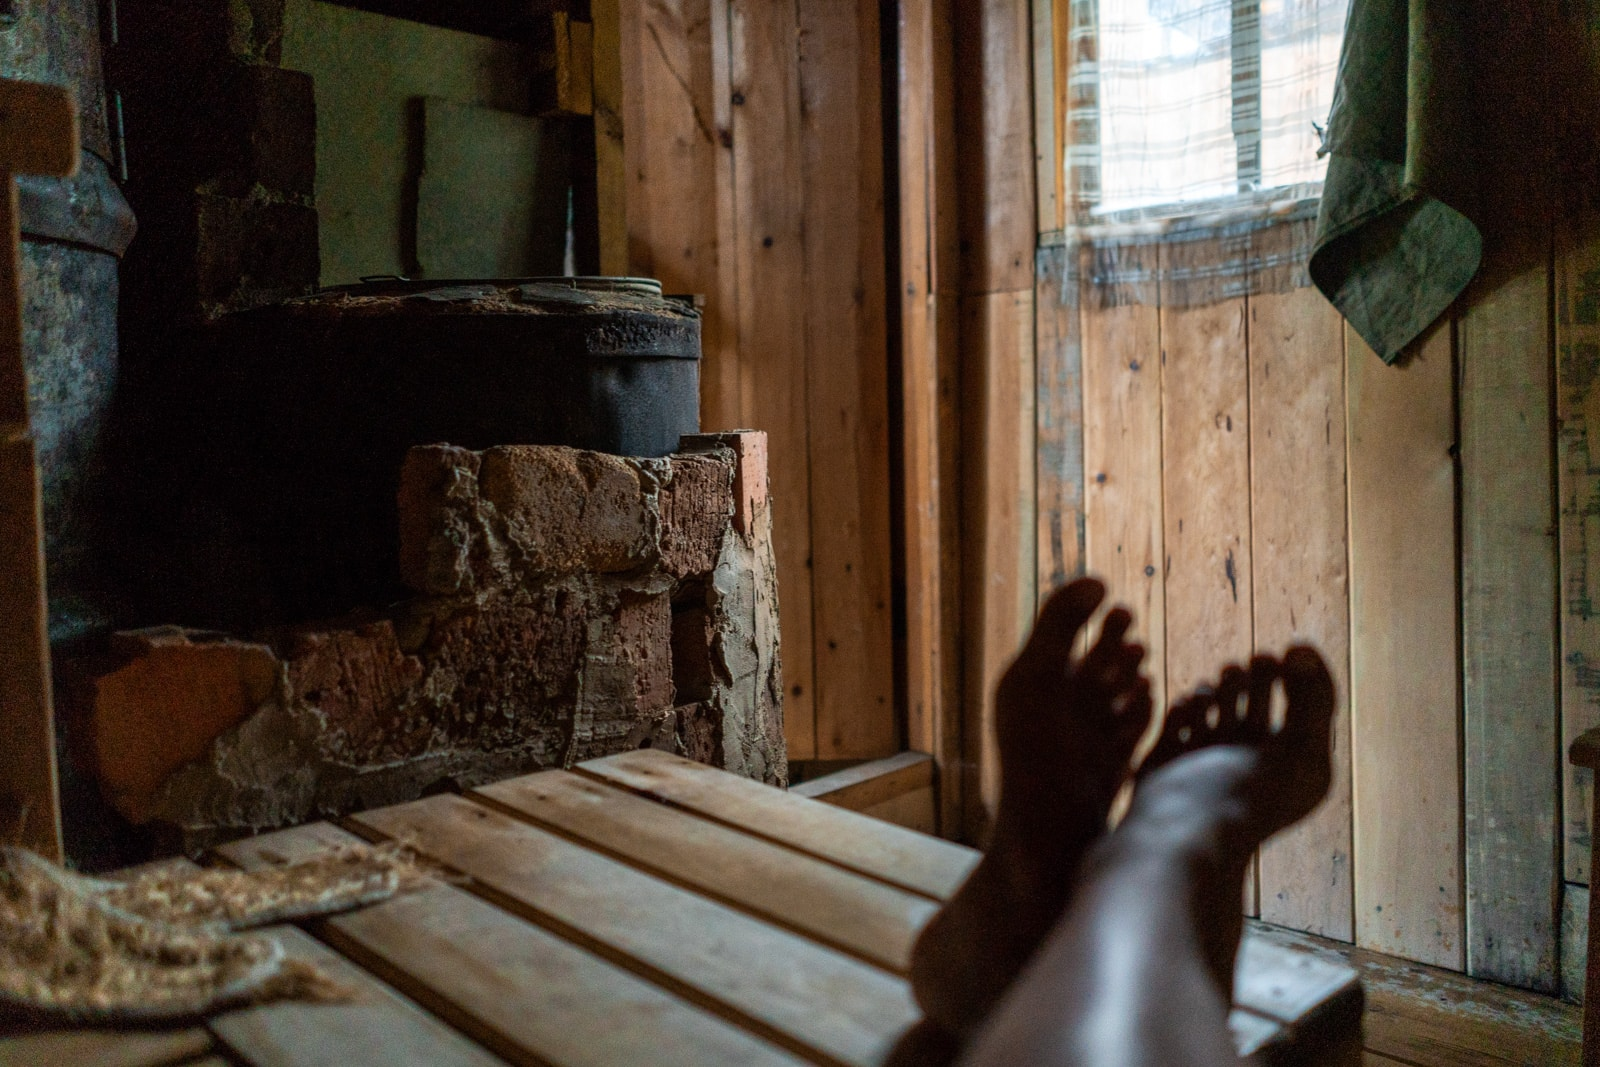 Feet while sitting inside a sauna in Siberia, Russia